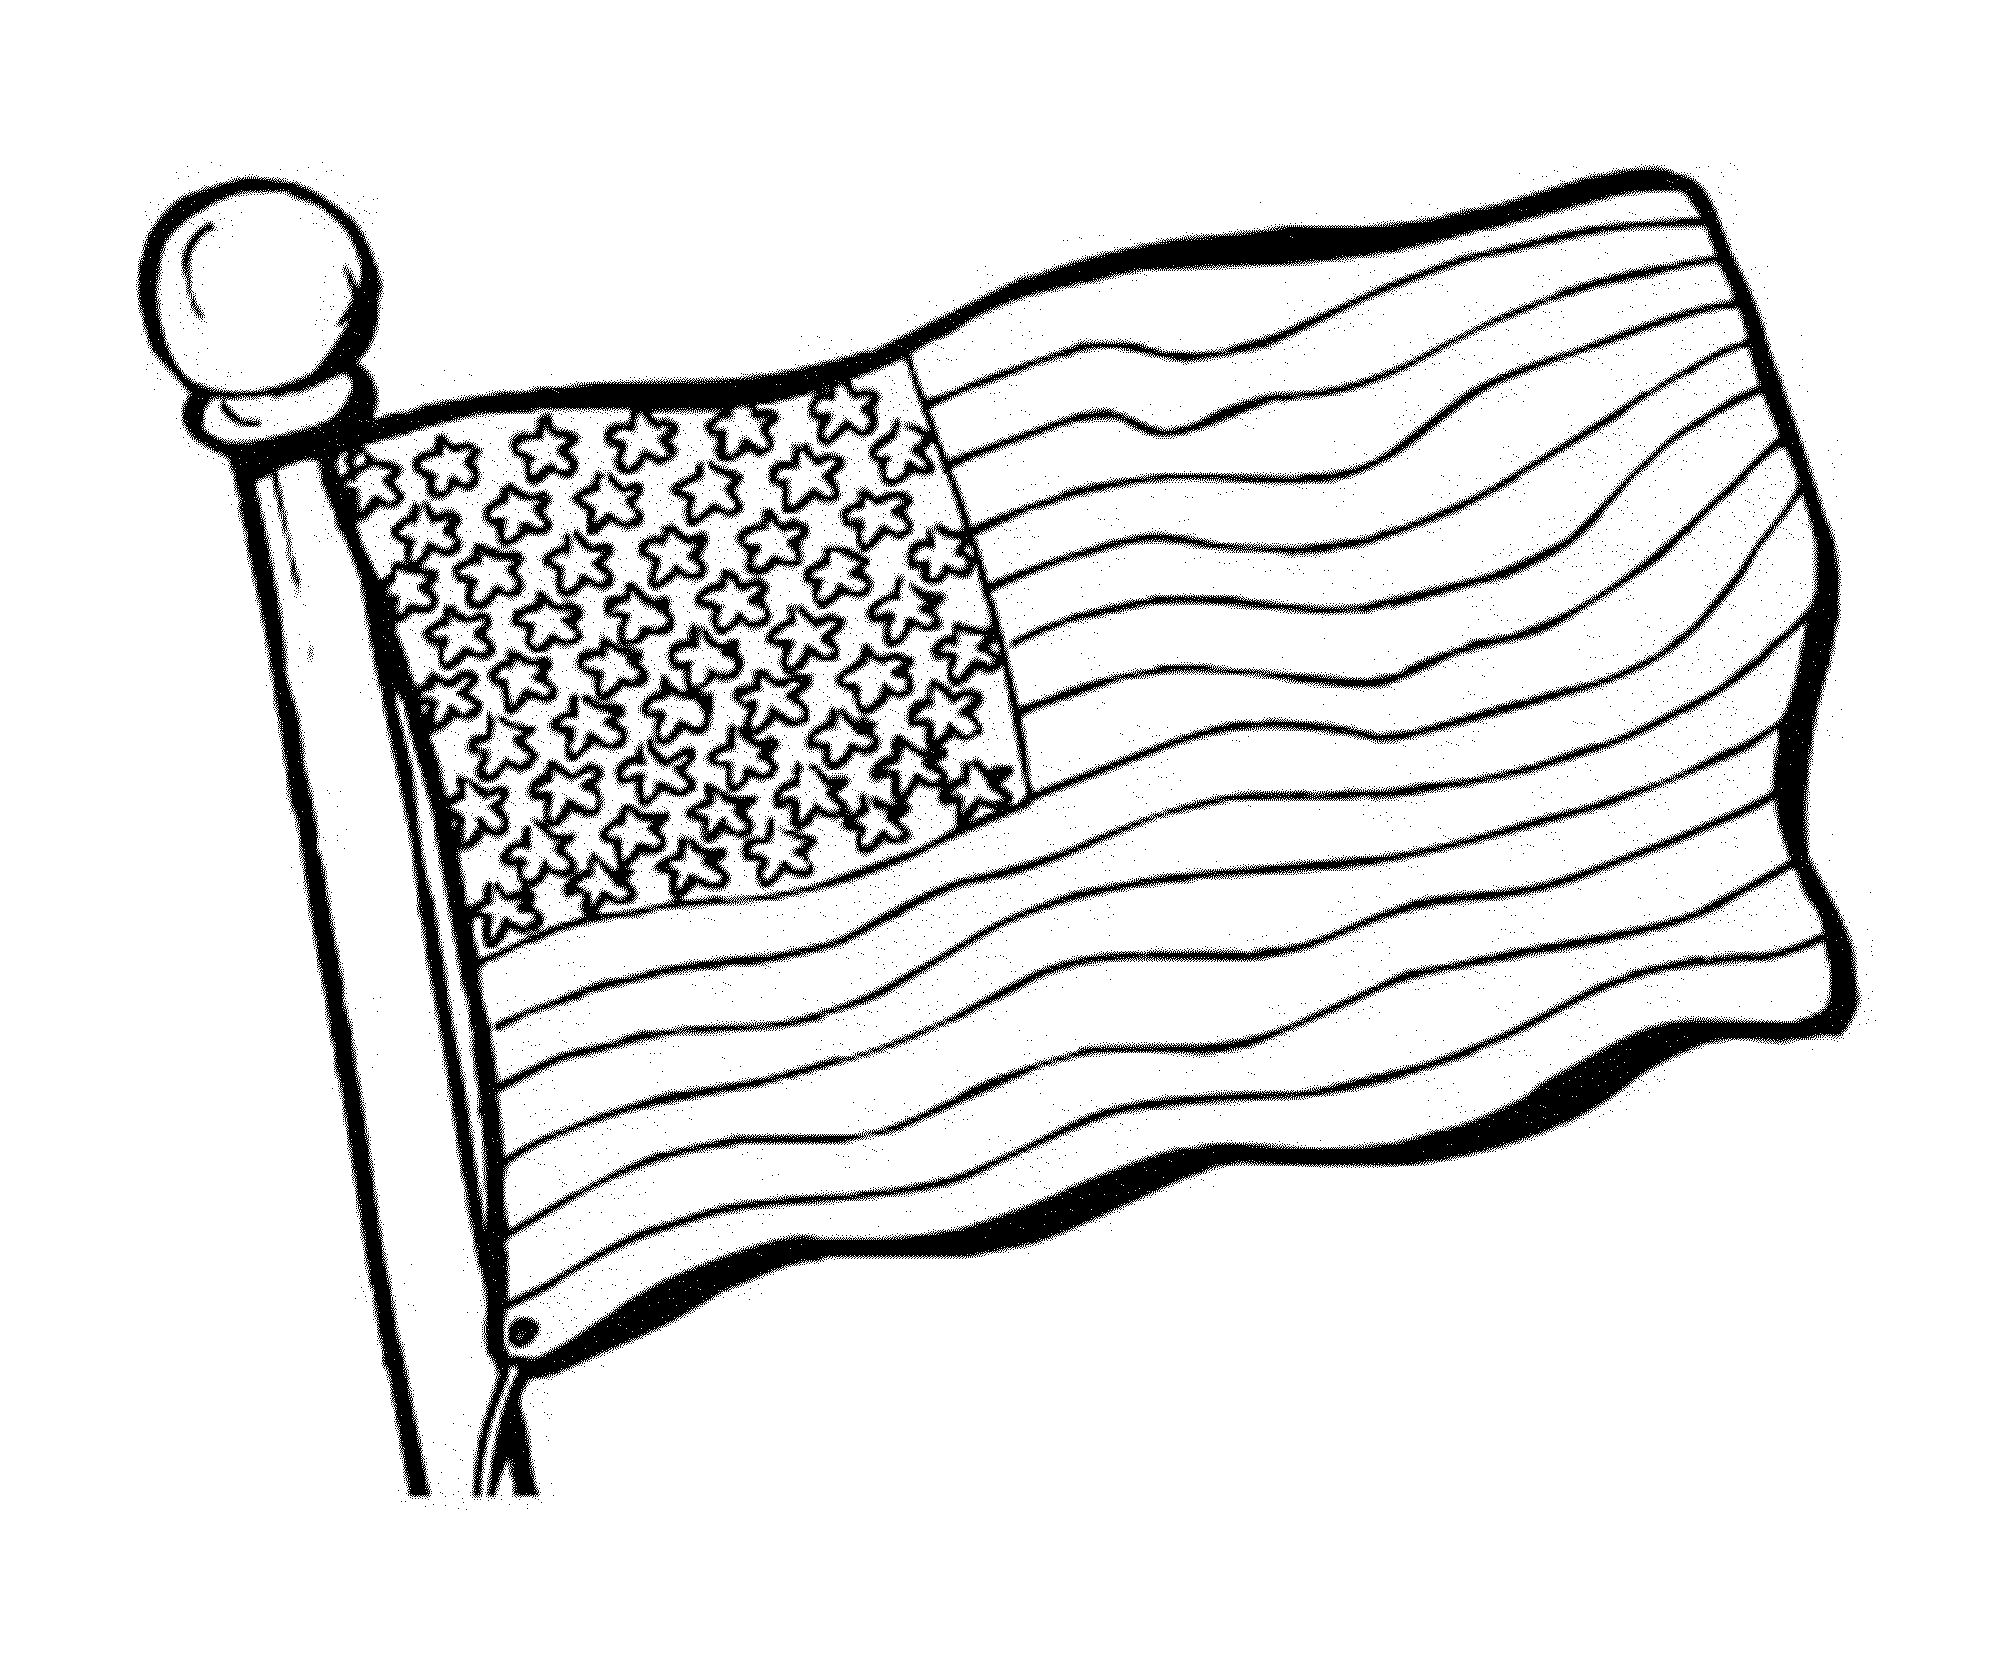 American Flag Line Drawing At Getdrawings